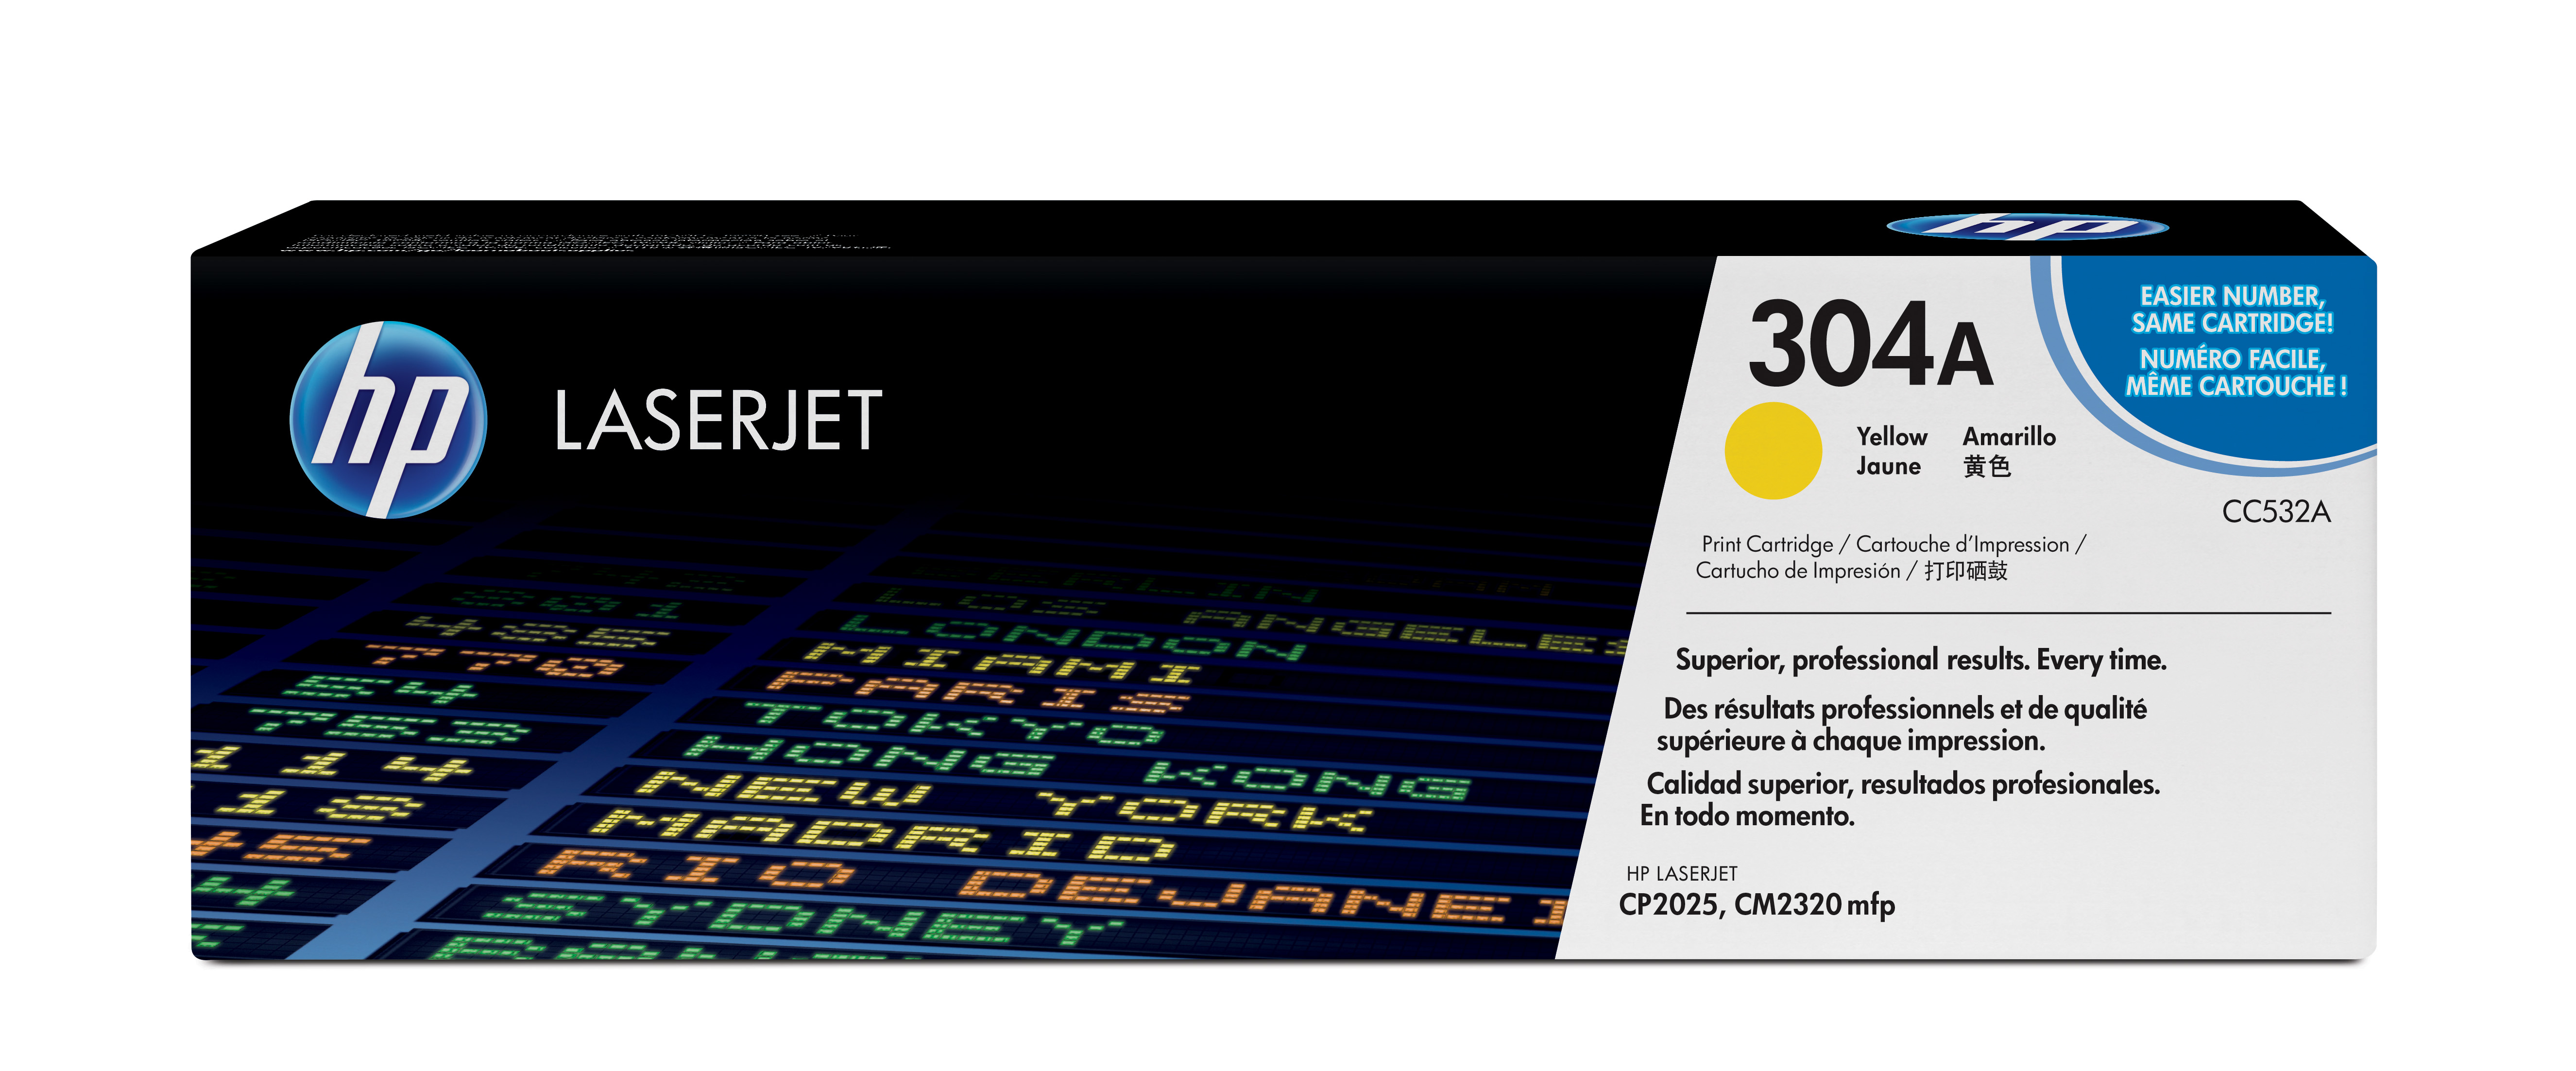 HP 304A Yellow Toner Cartridge,CC532A